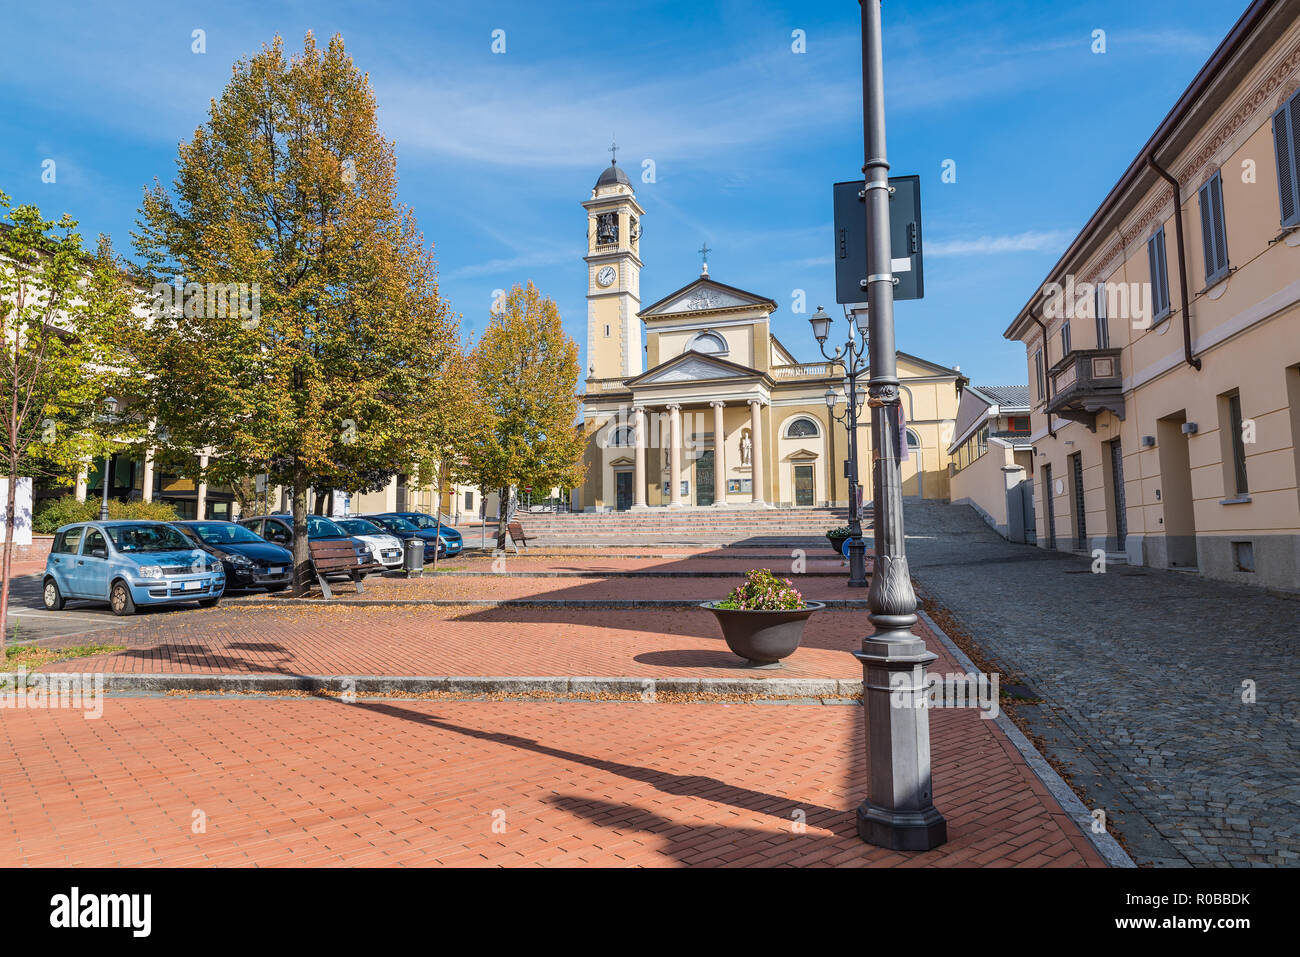 Gerenzano, historical center of the town near the town hall, province of Varese, Lombardy, about 25 kilometres (16 mi) from Milan, Italy. - Stock Image